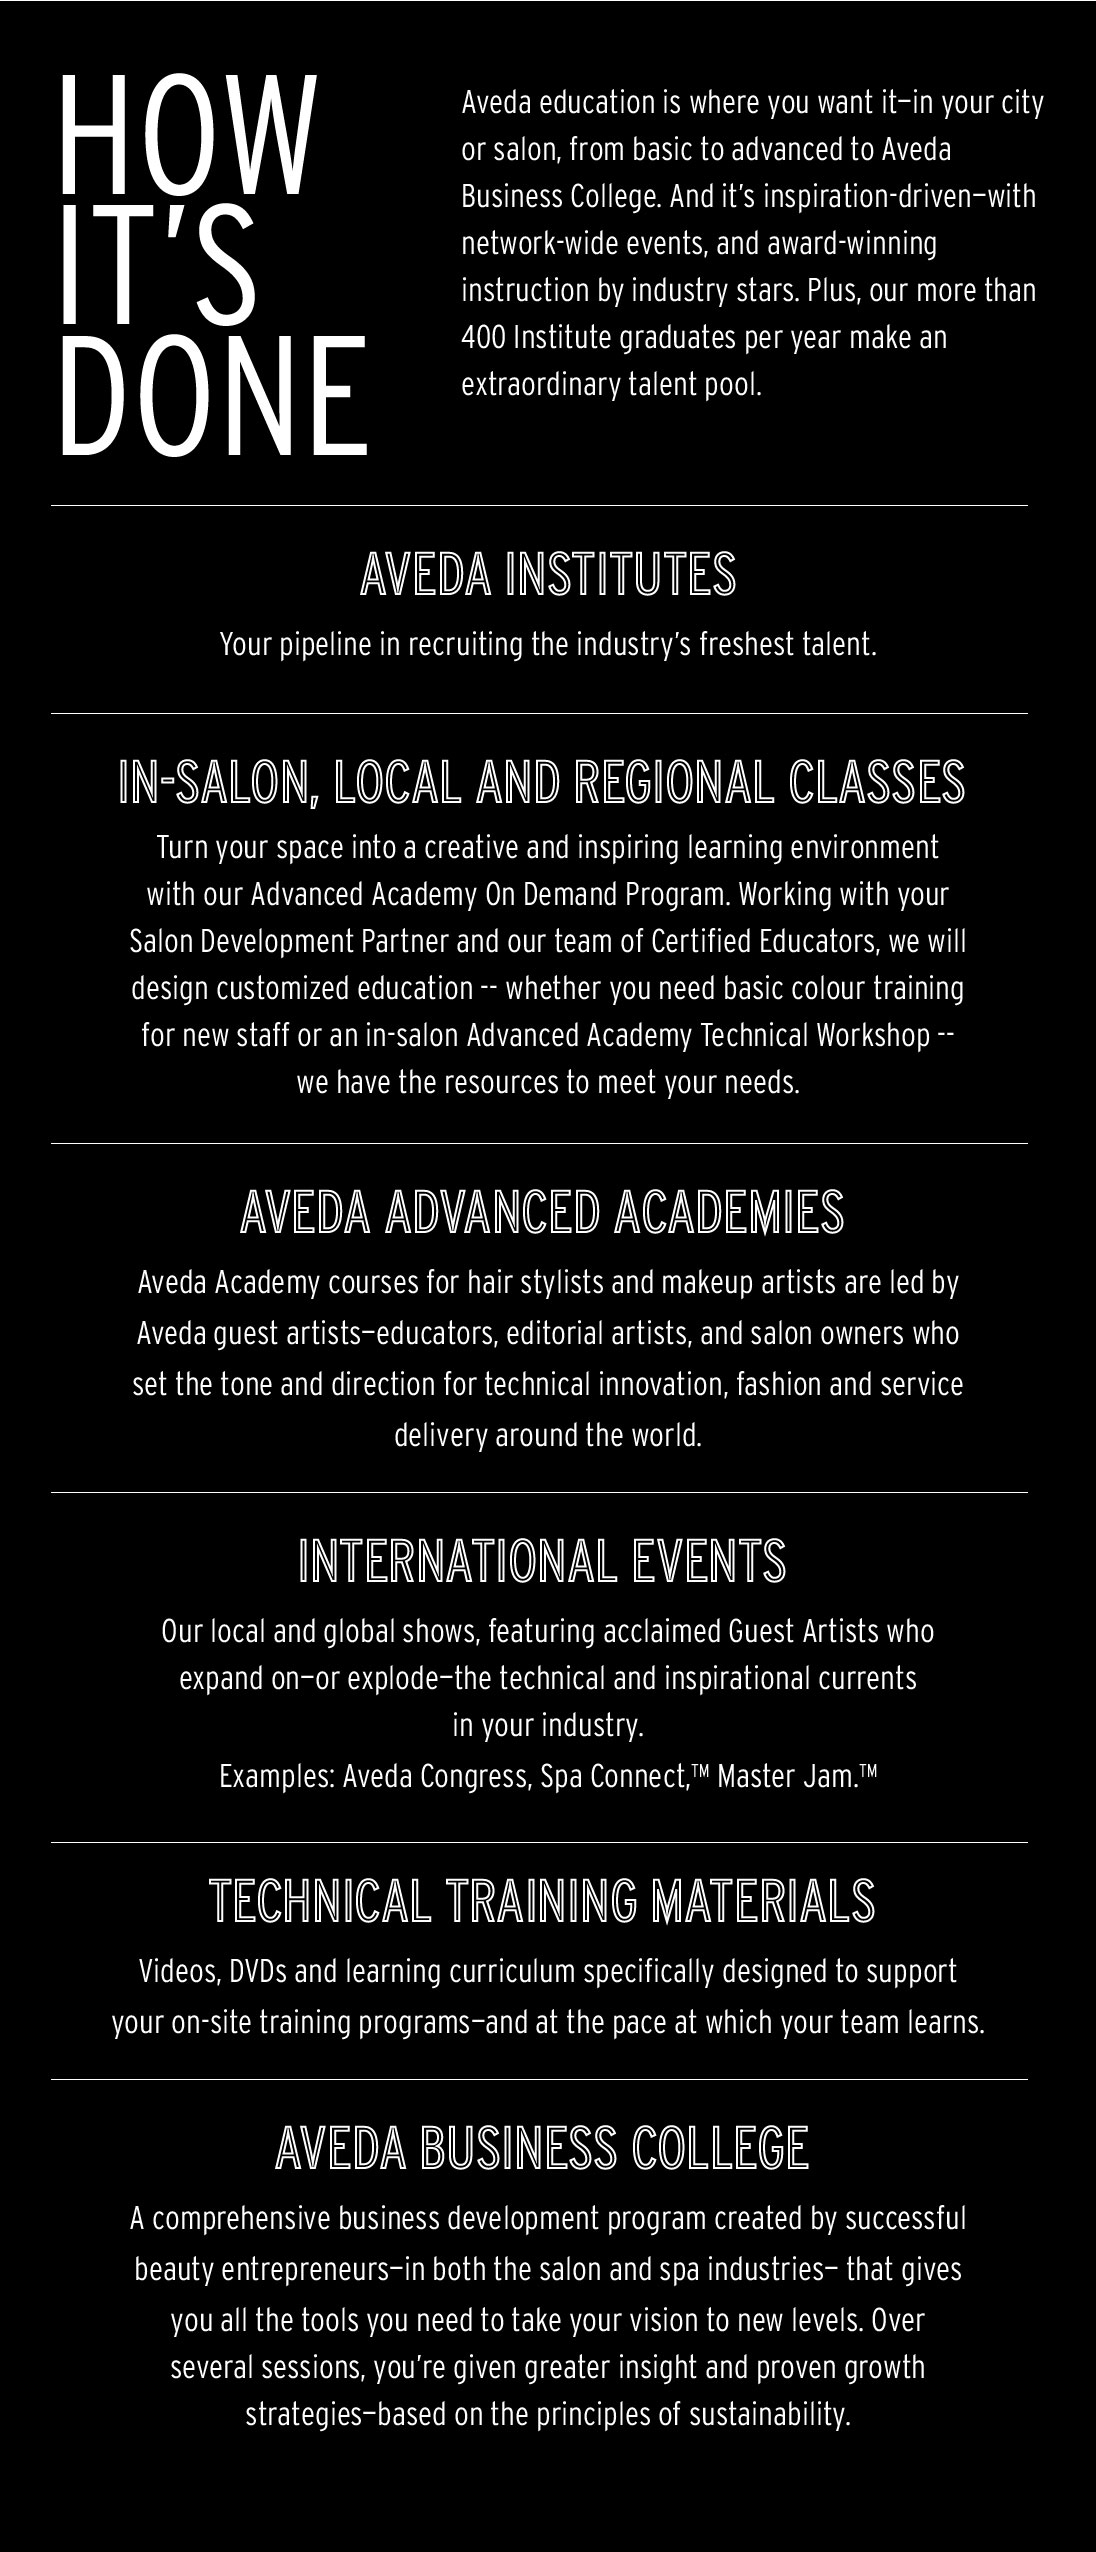 AVEDA-NEW-BUSINESS---EDUCATION_07.jpg